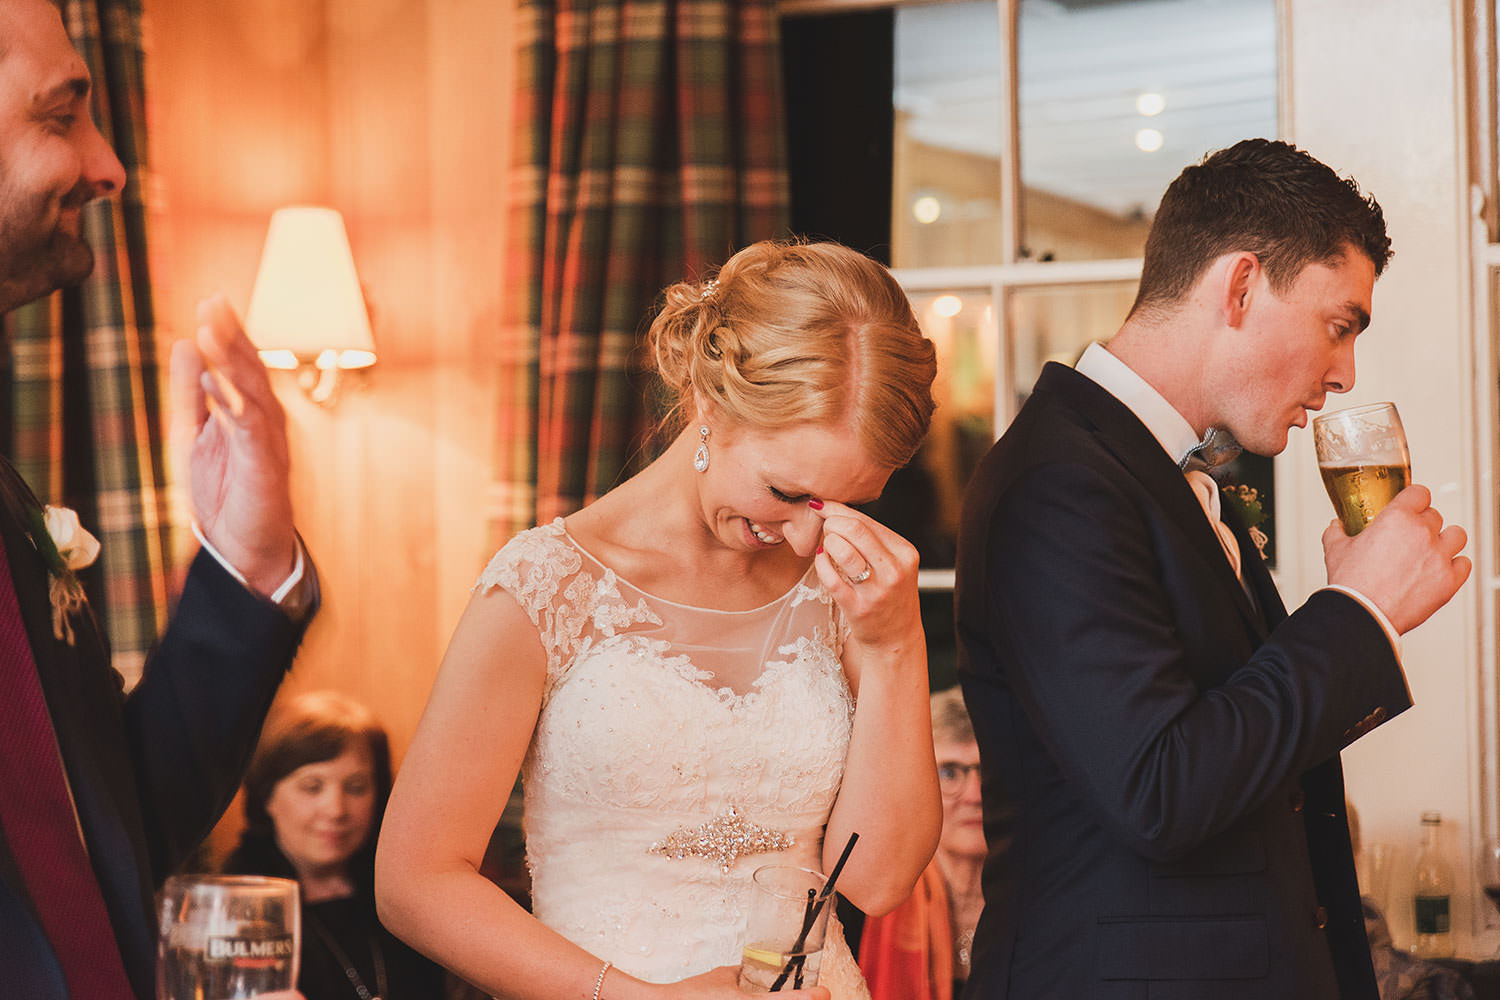 dunraven-arms-hotel-wedding-photography-144.jpg